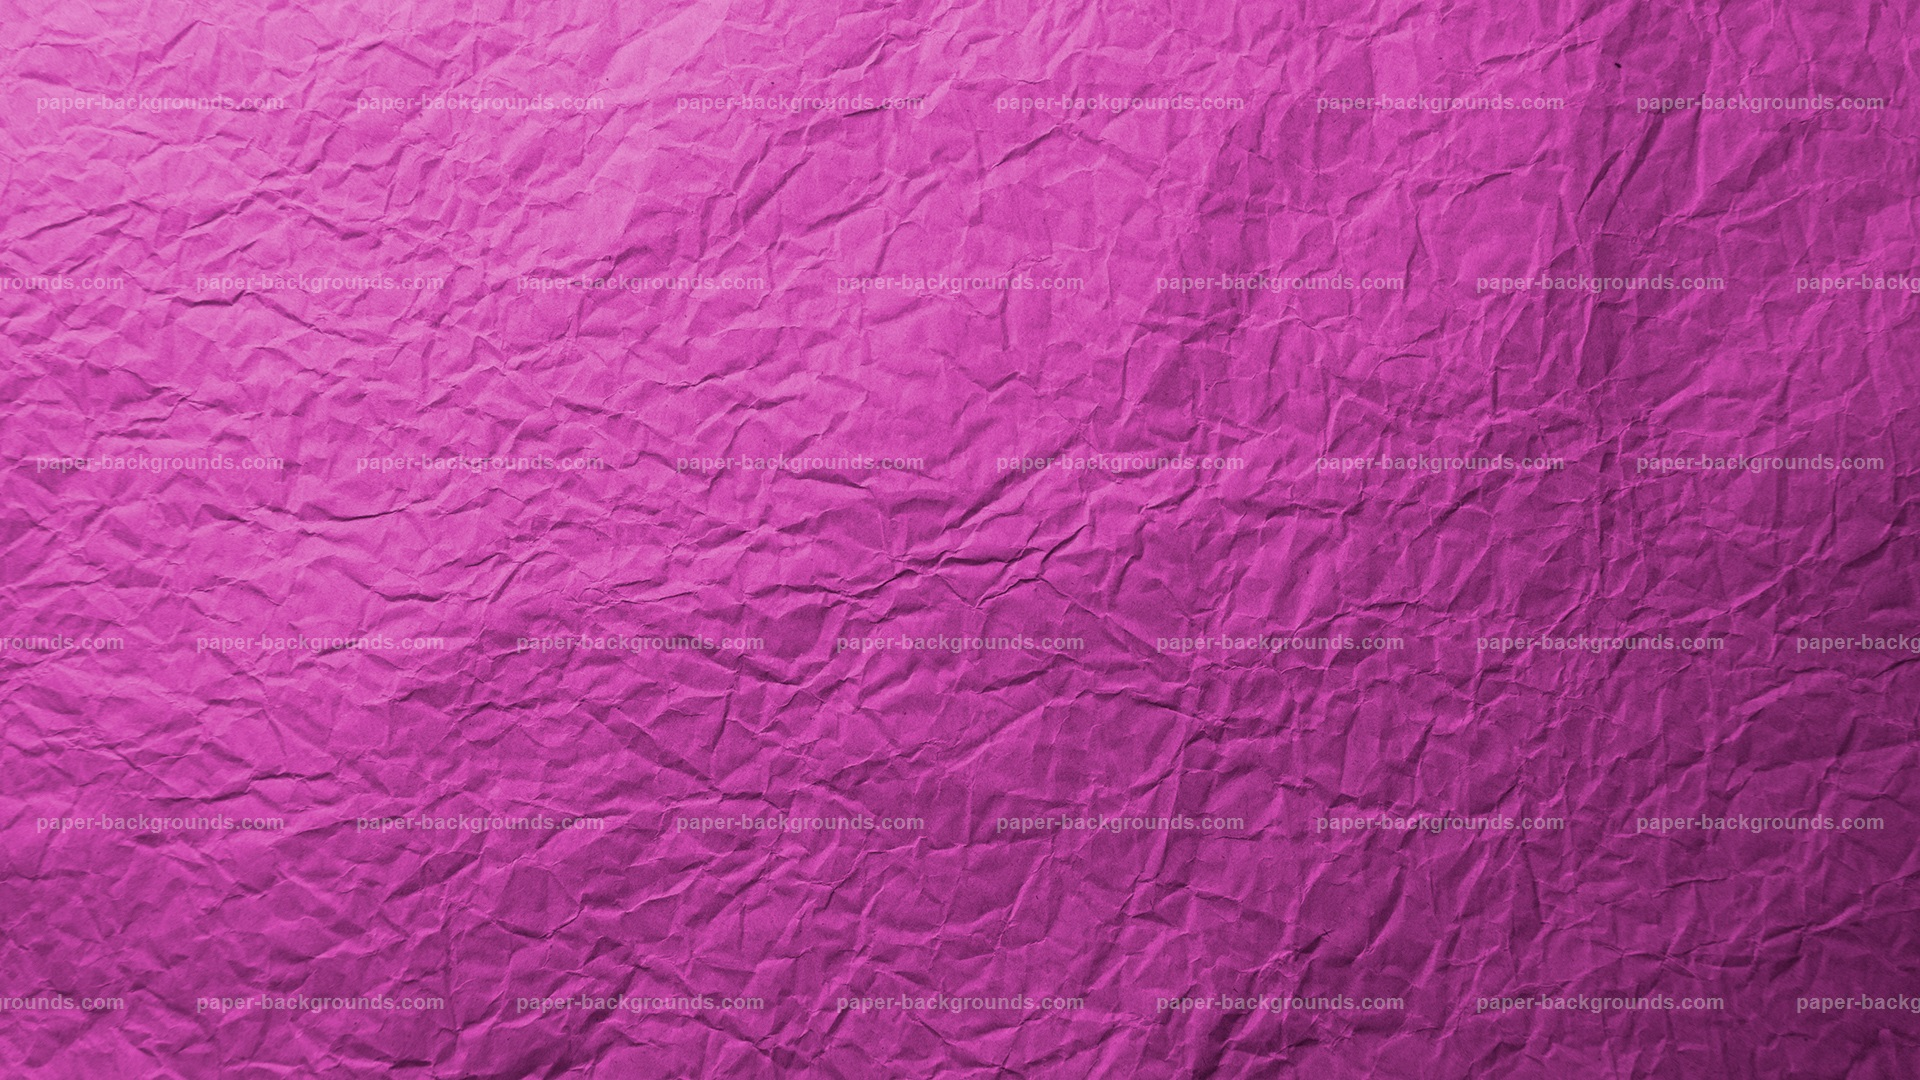 Paper Backgrounds | Purple Wrinkled Paper Texture HD